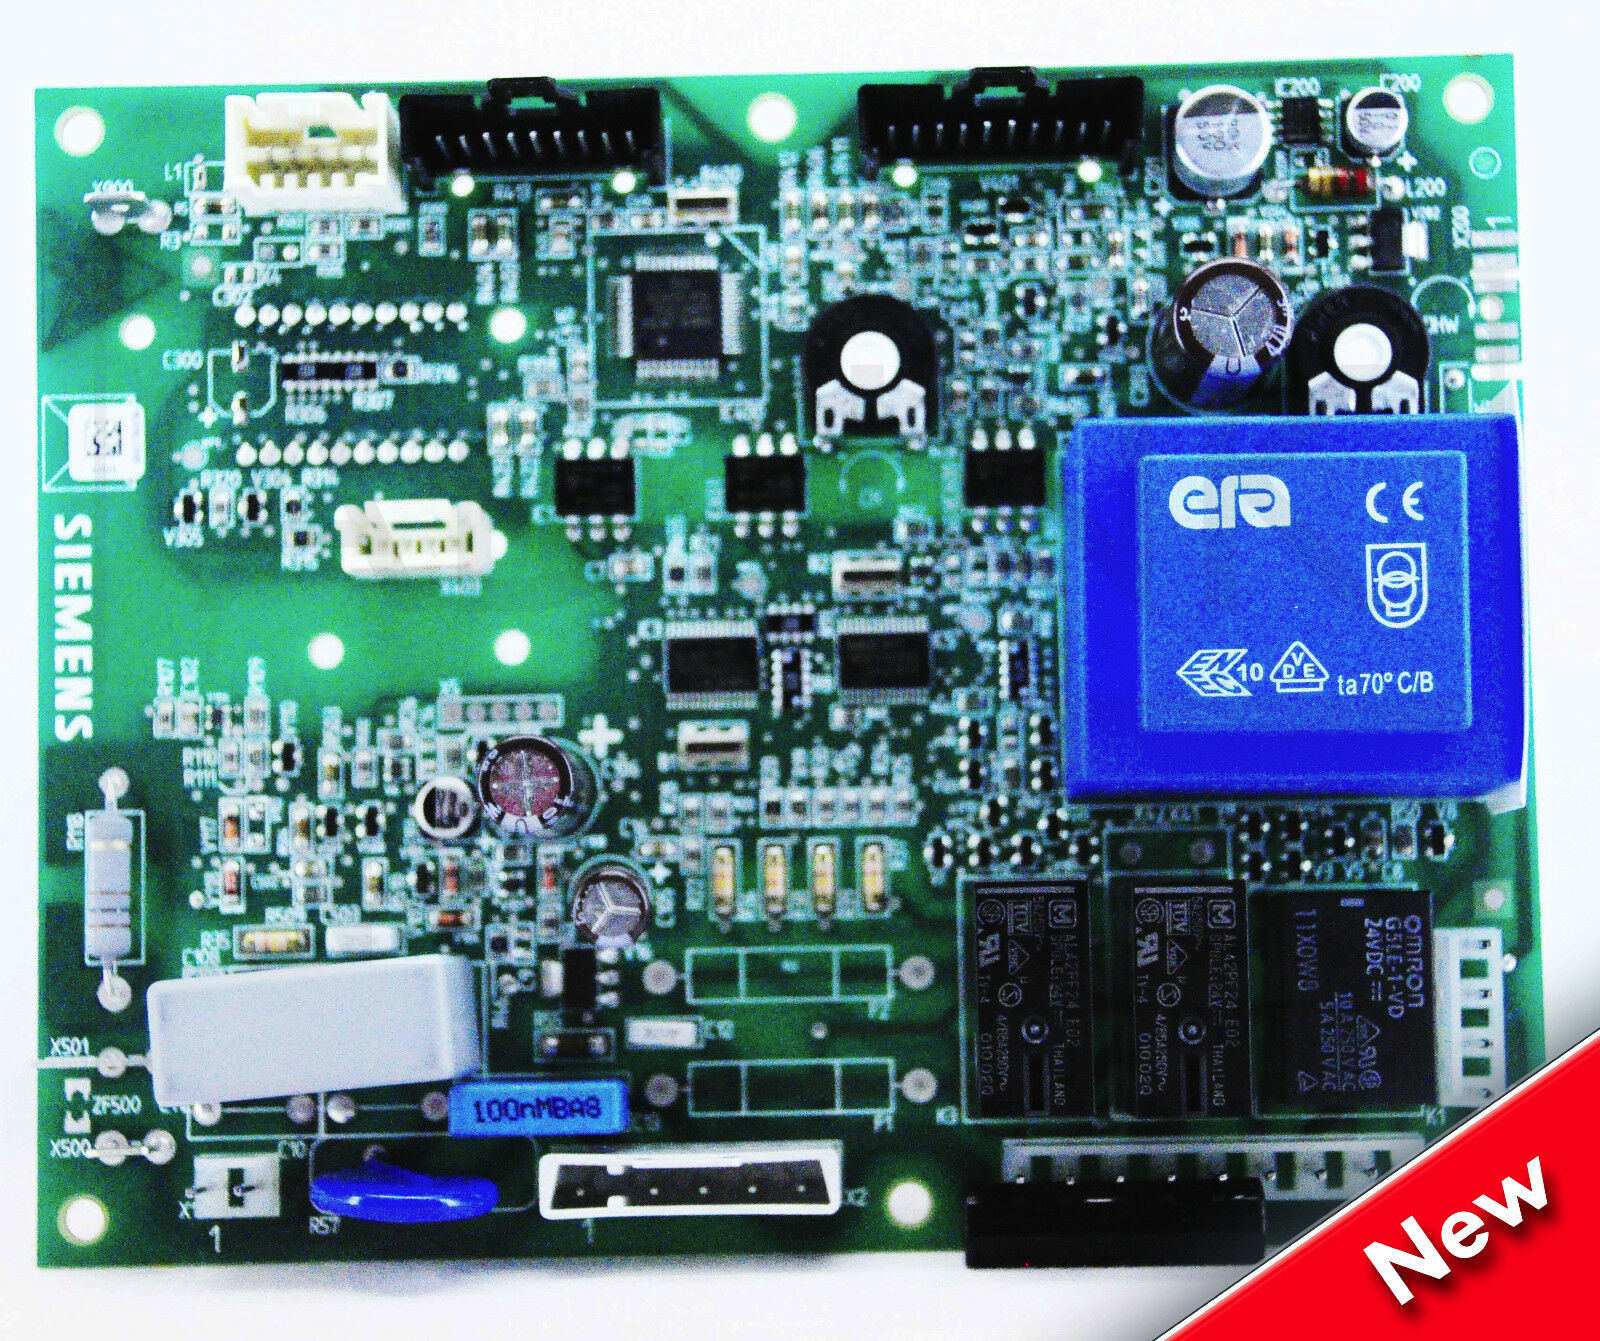 MAIN COMBI 25 Eco & 25 Eco Elite Boiler Main Printed Circuit Board ...